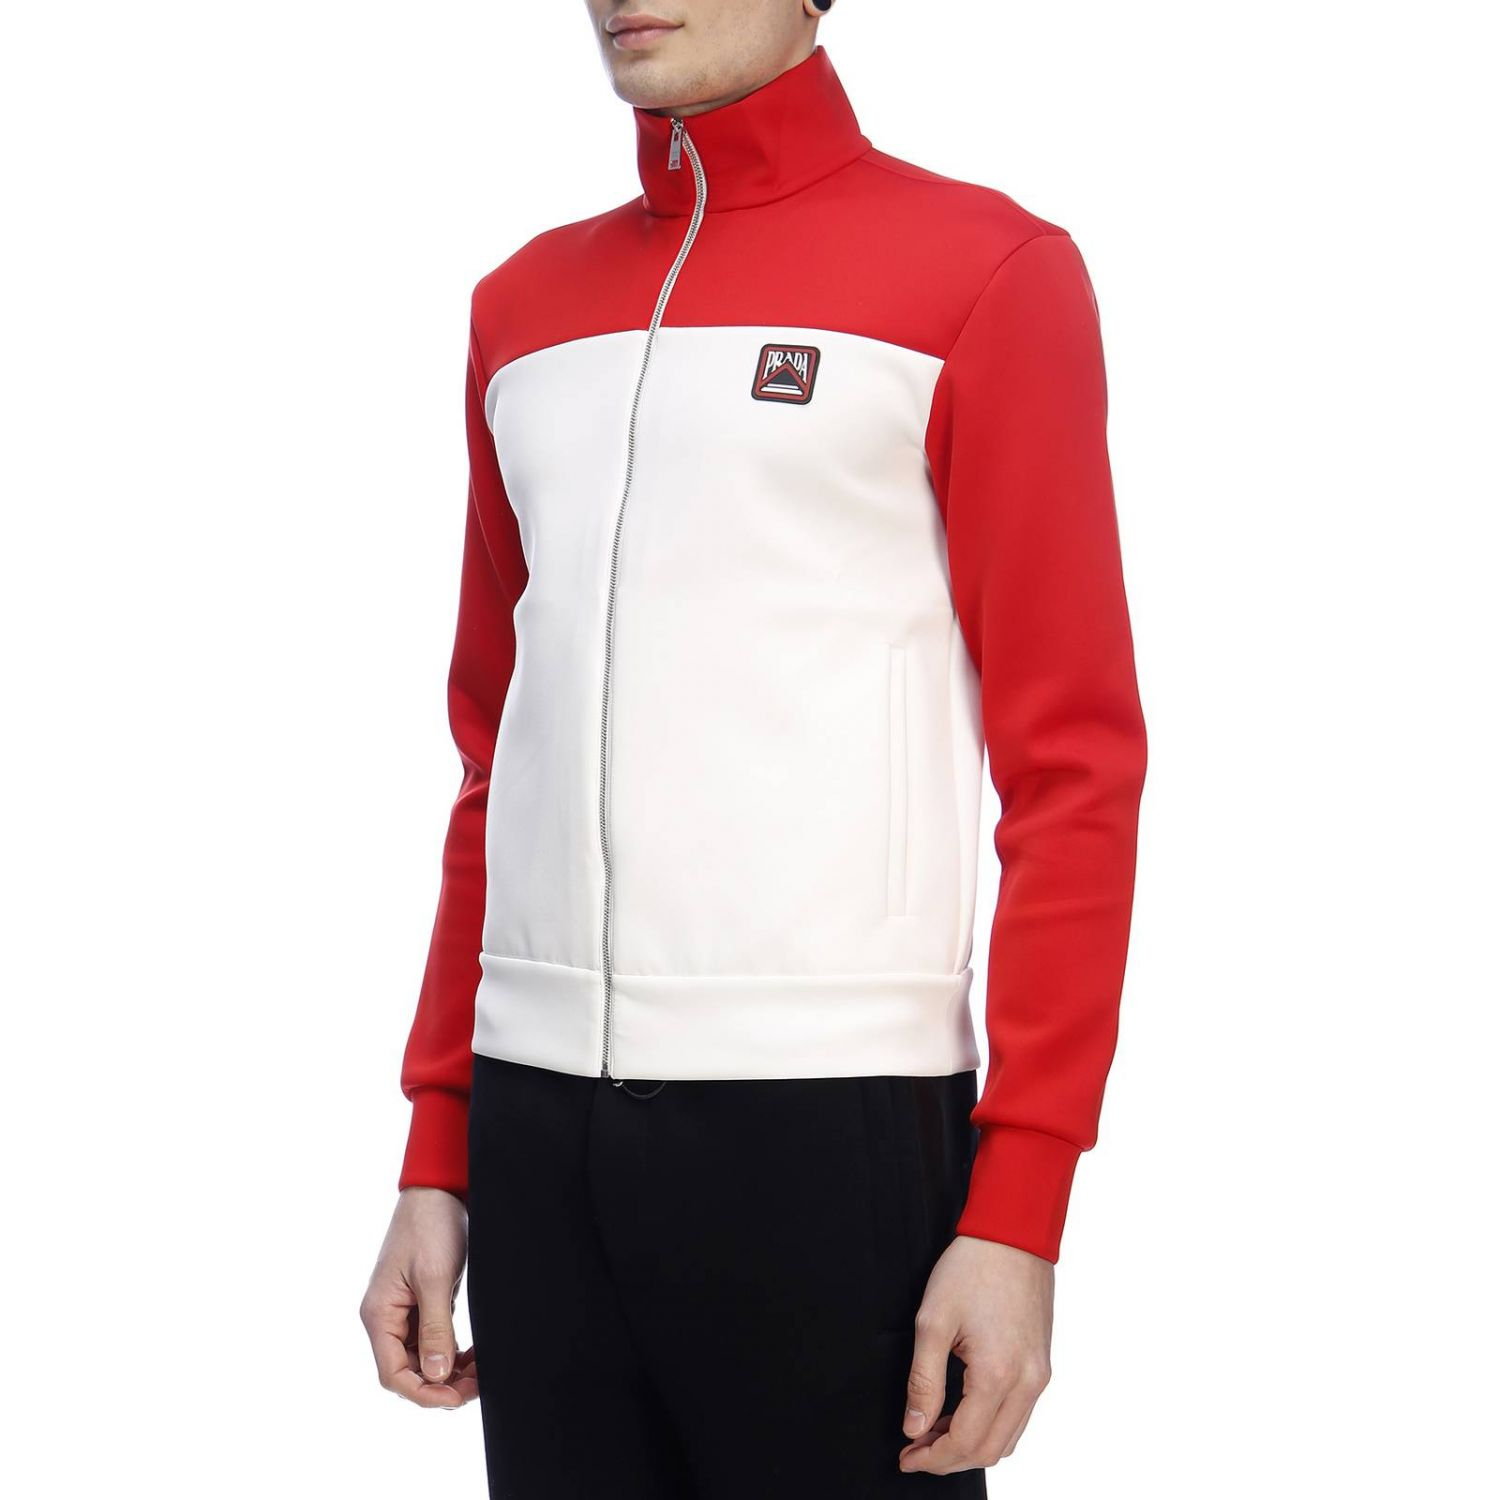 Jumper men Prada red 2